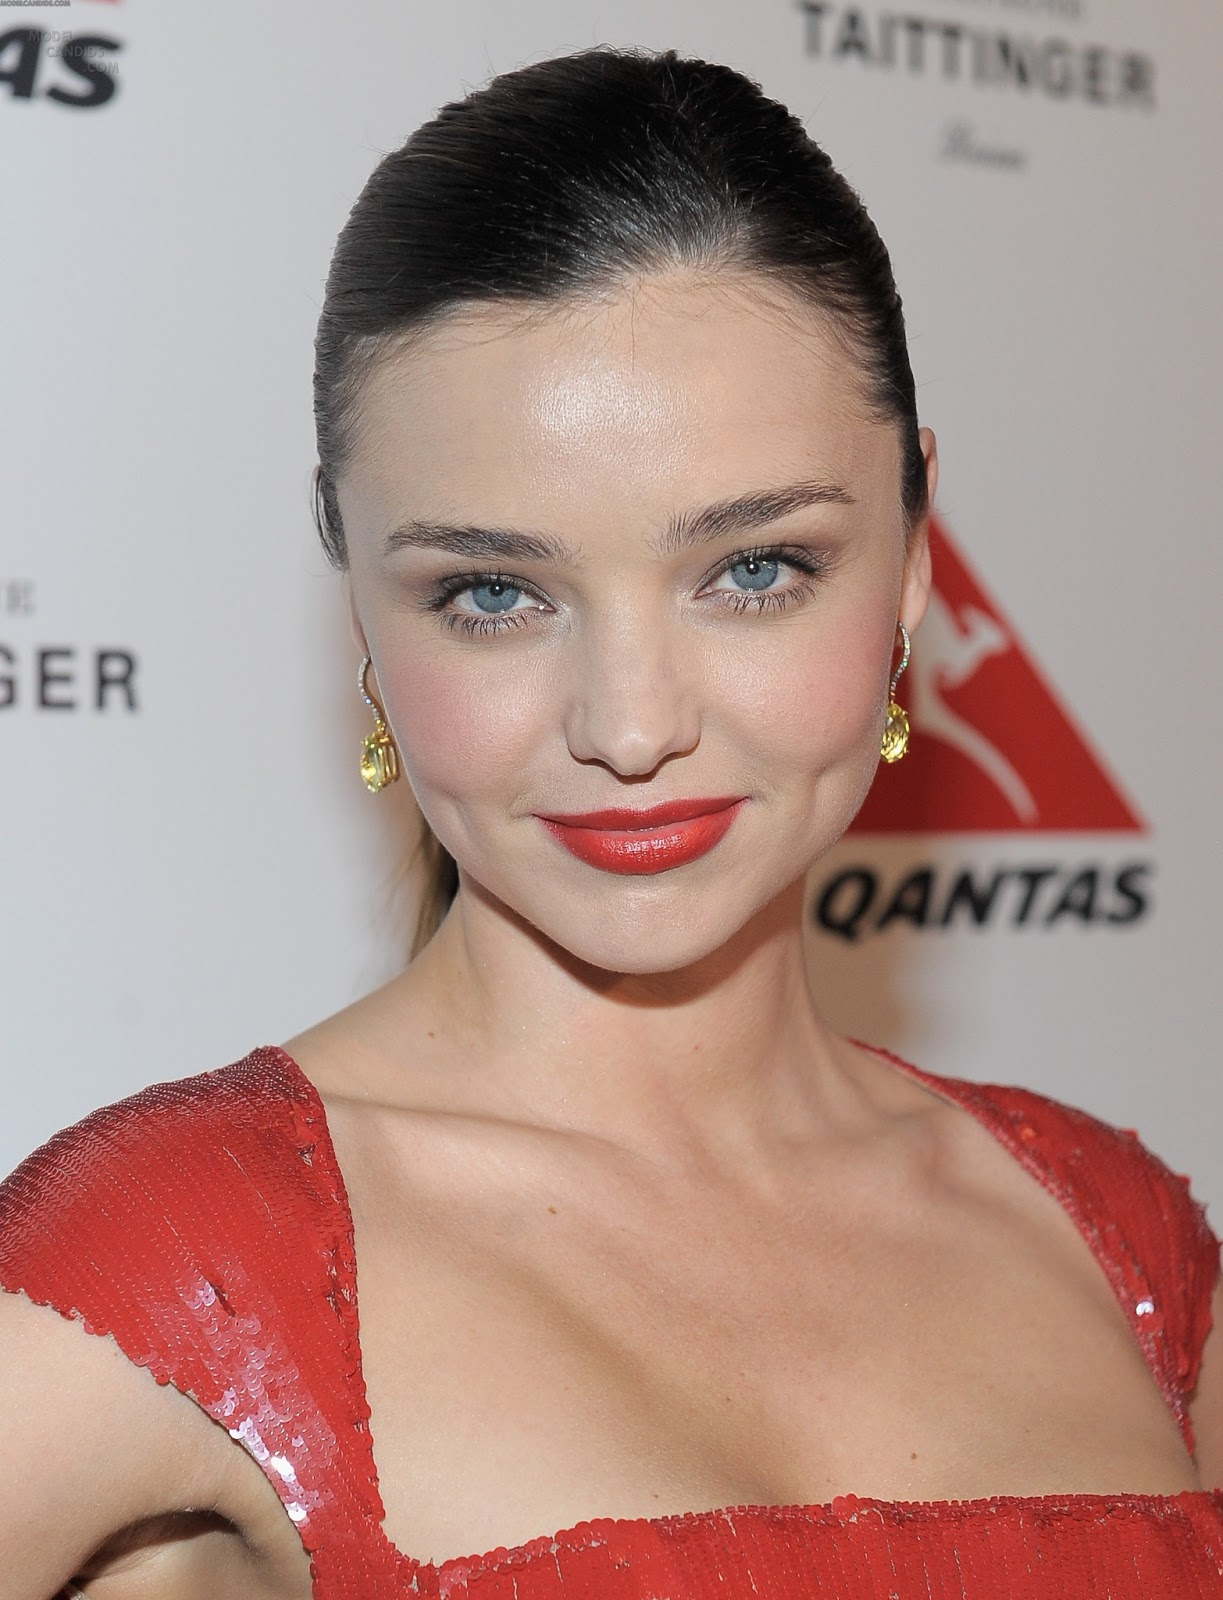 Miranda Kerr S Best Style Looks Ever: Miranda Kerr Profile And Latest Pictures 2013